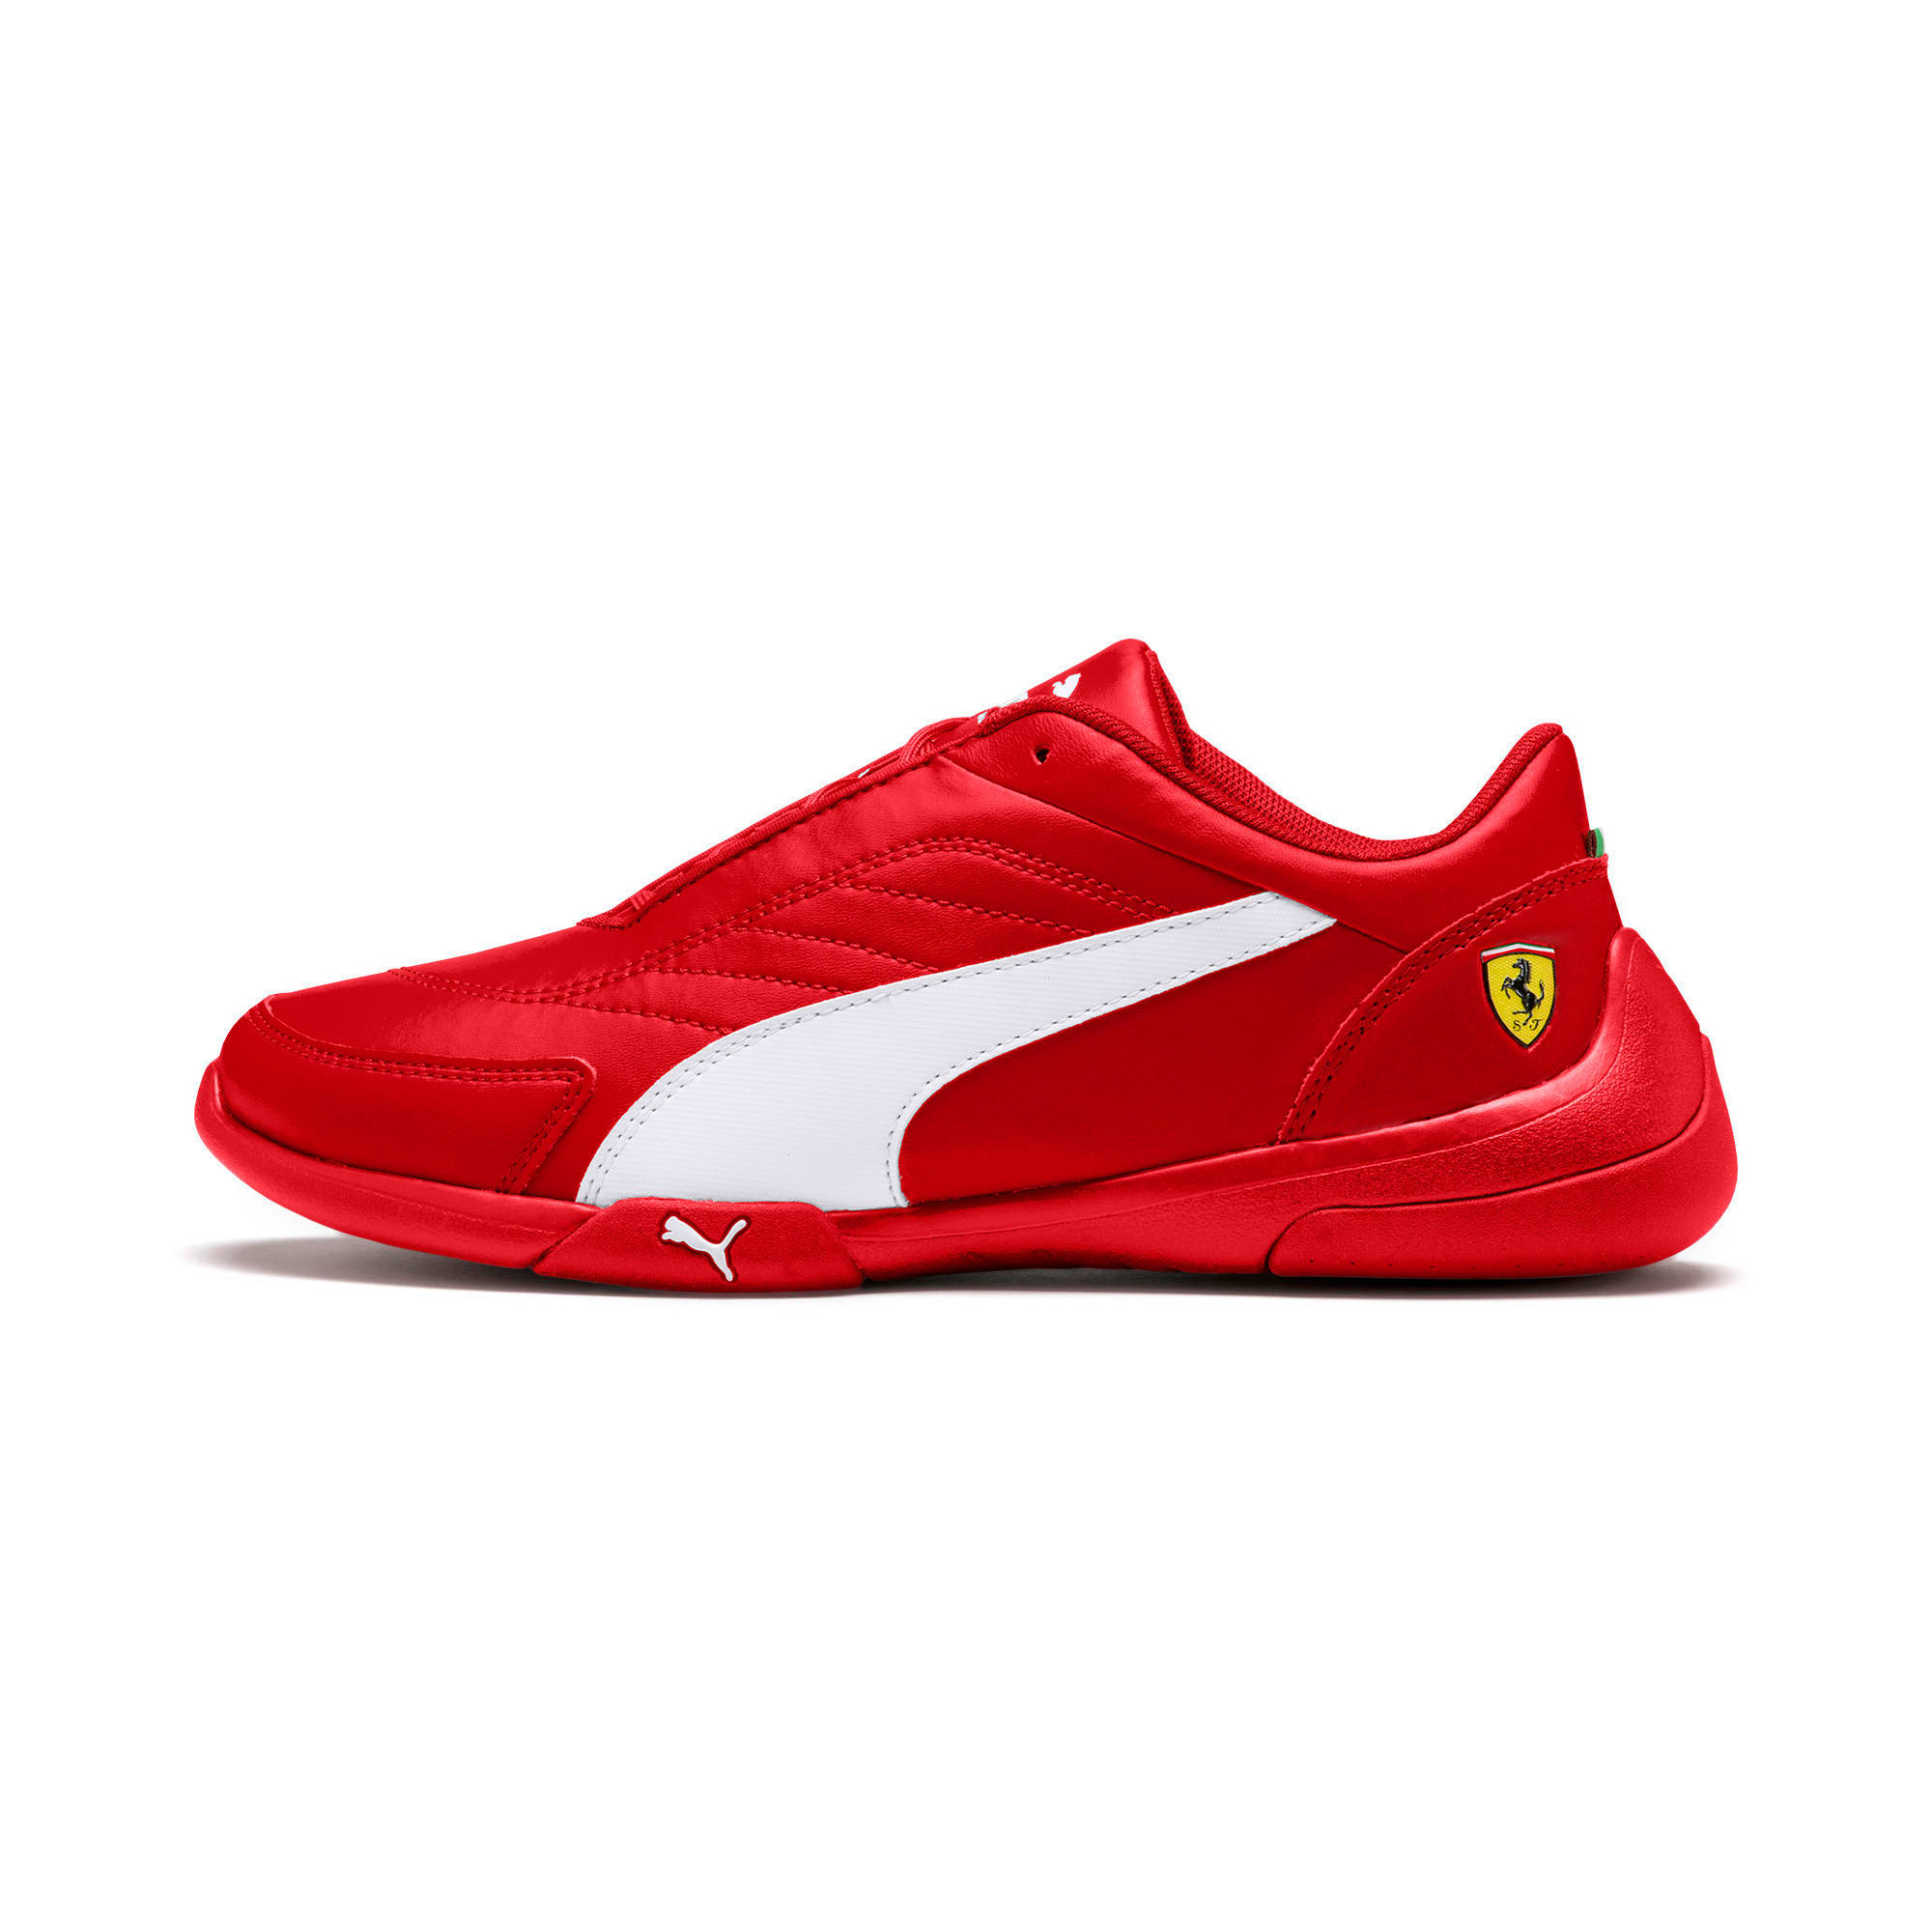 Thumbnail 1 of Ferrari Kart Cat III Youth Trainers, Rosso Corsa-Wht-Rosso Corsa, medium-IND